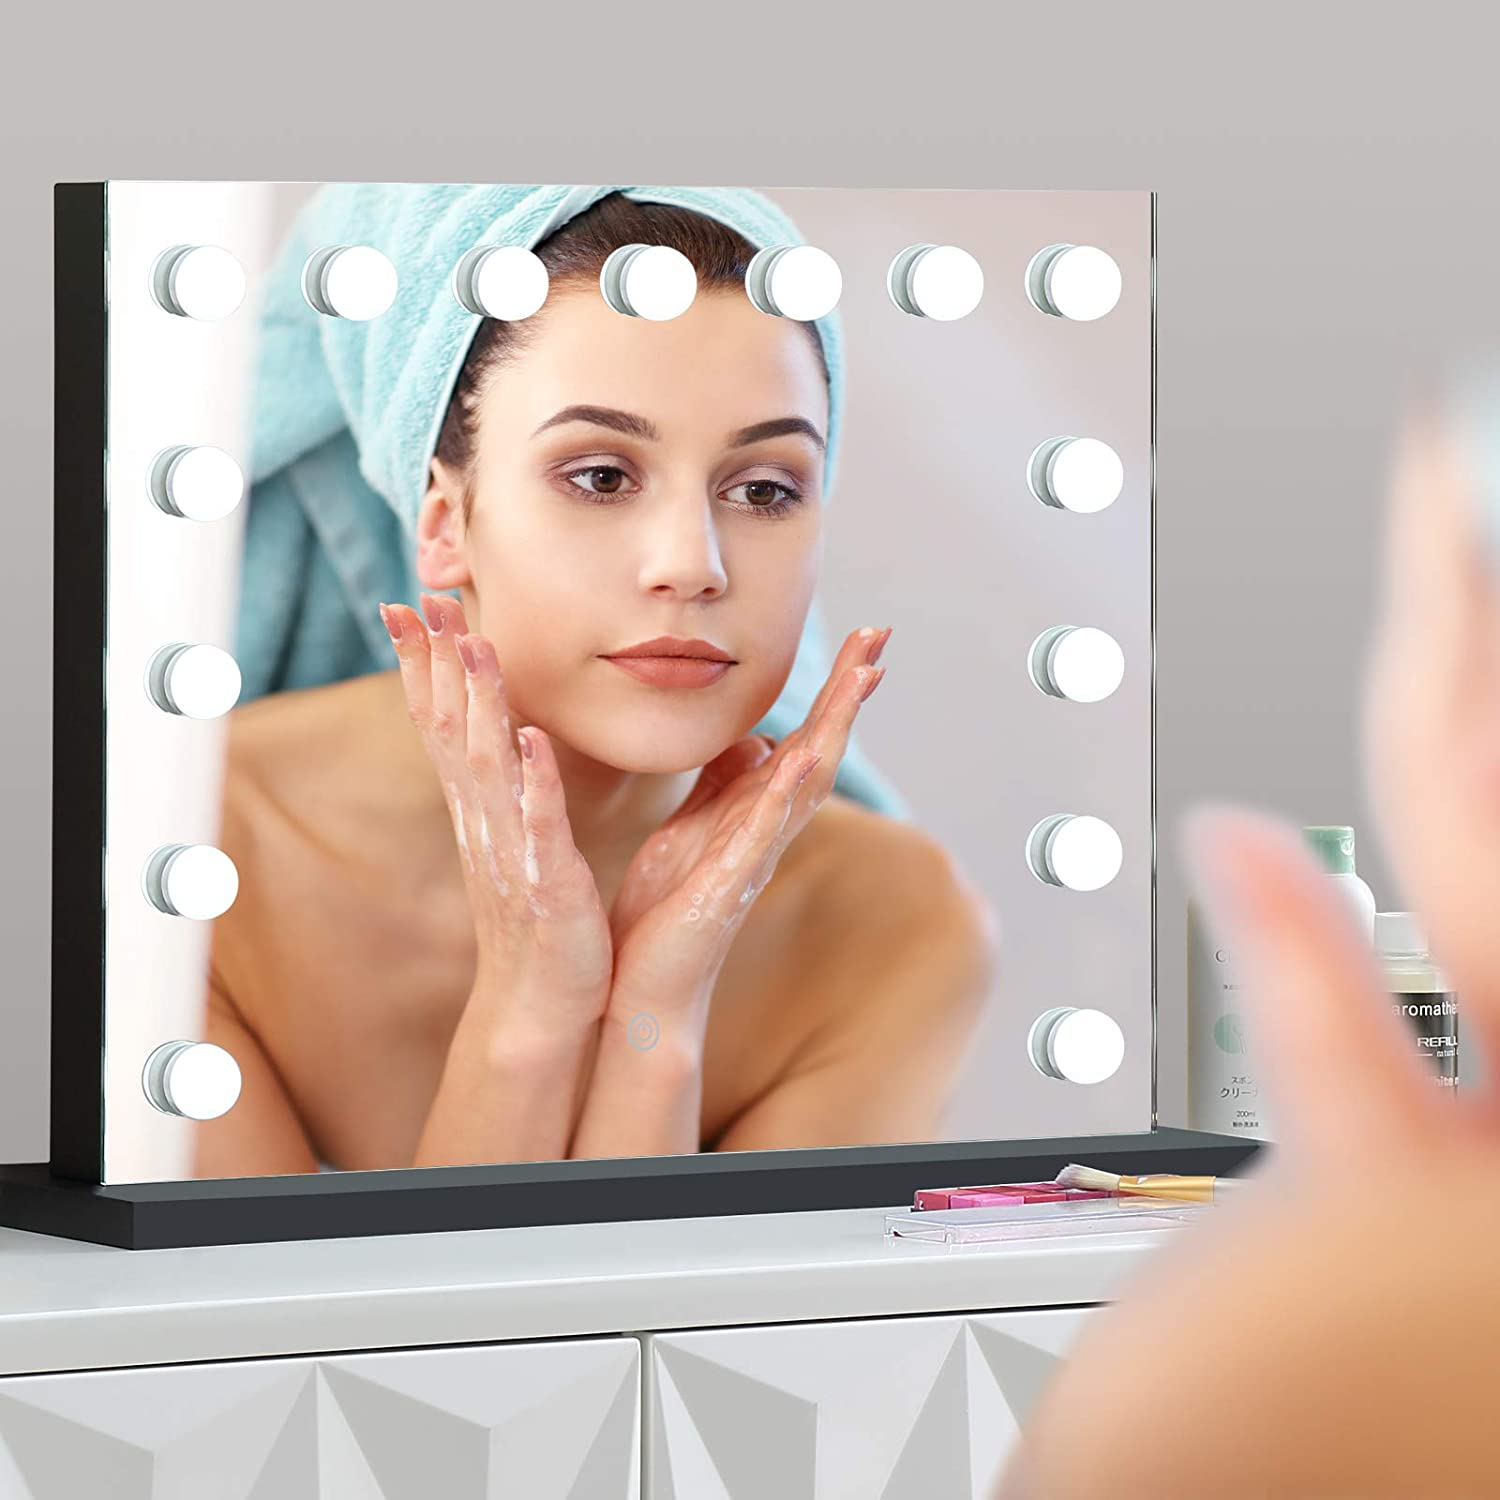 UM Vanity Mirror with Lights 15pcs Makeup LED Mi Removable Max 69% OFF Bulbs New Shipping Free Shipping